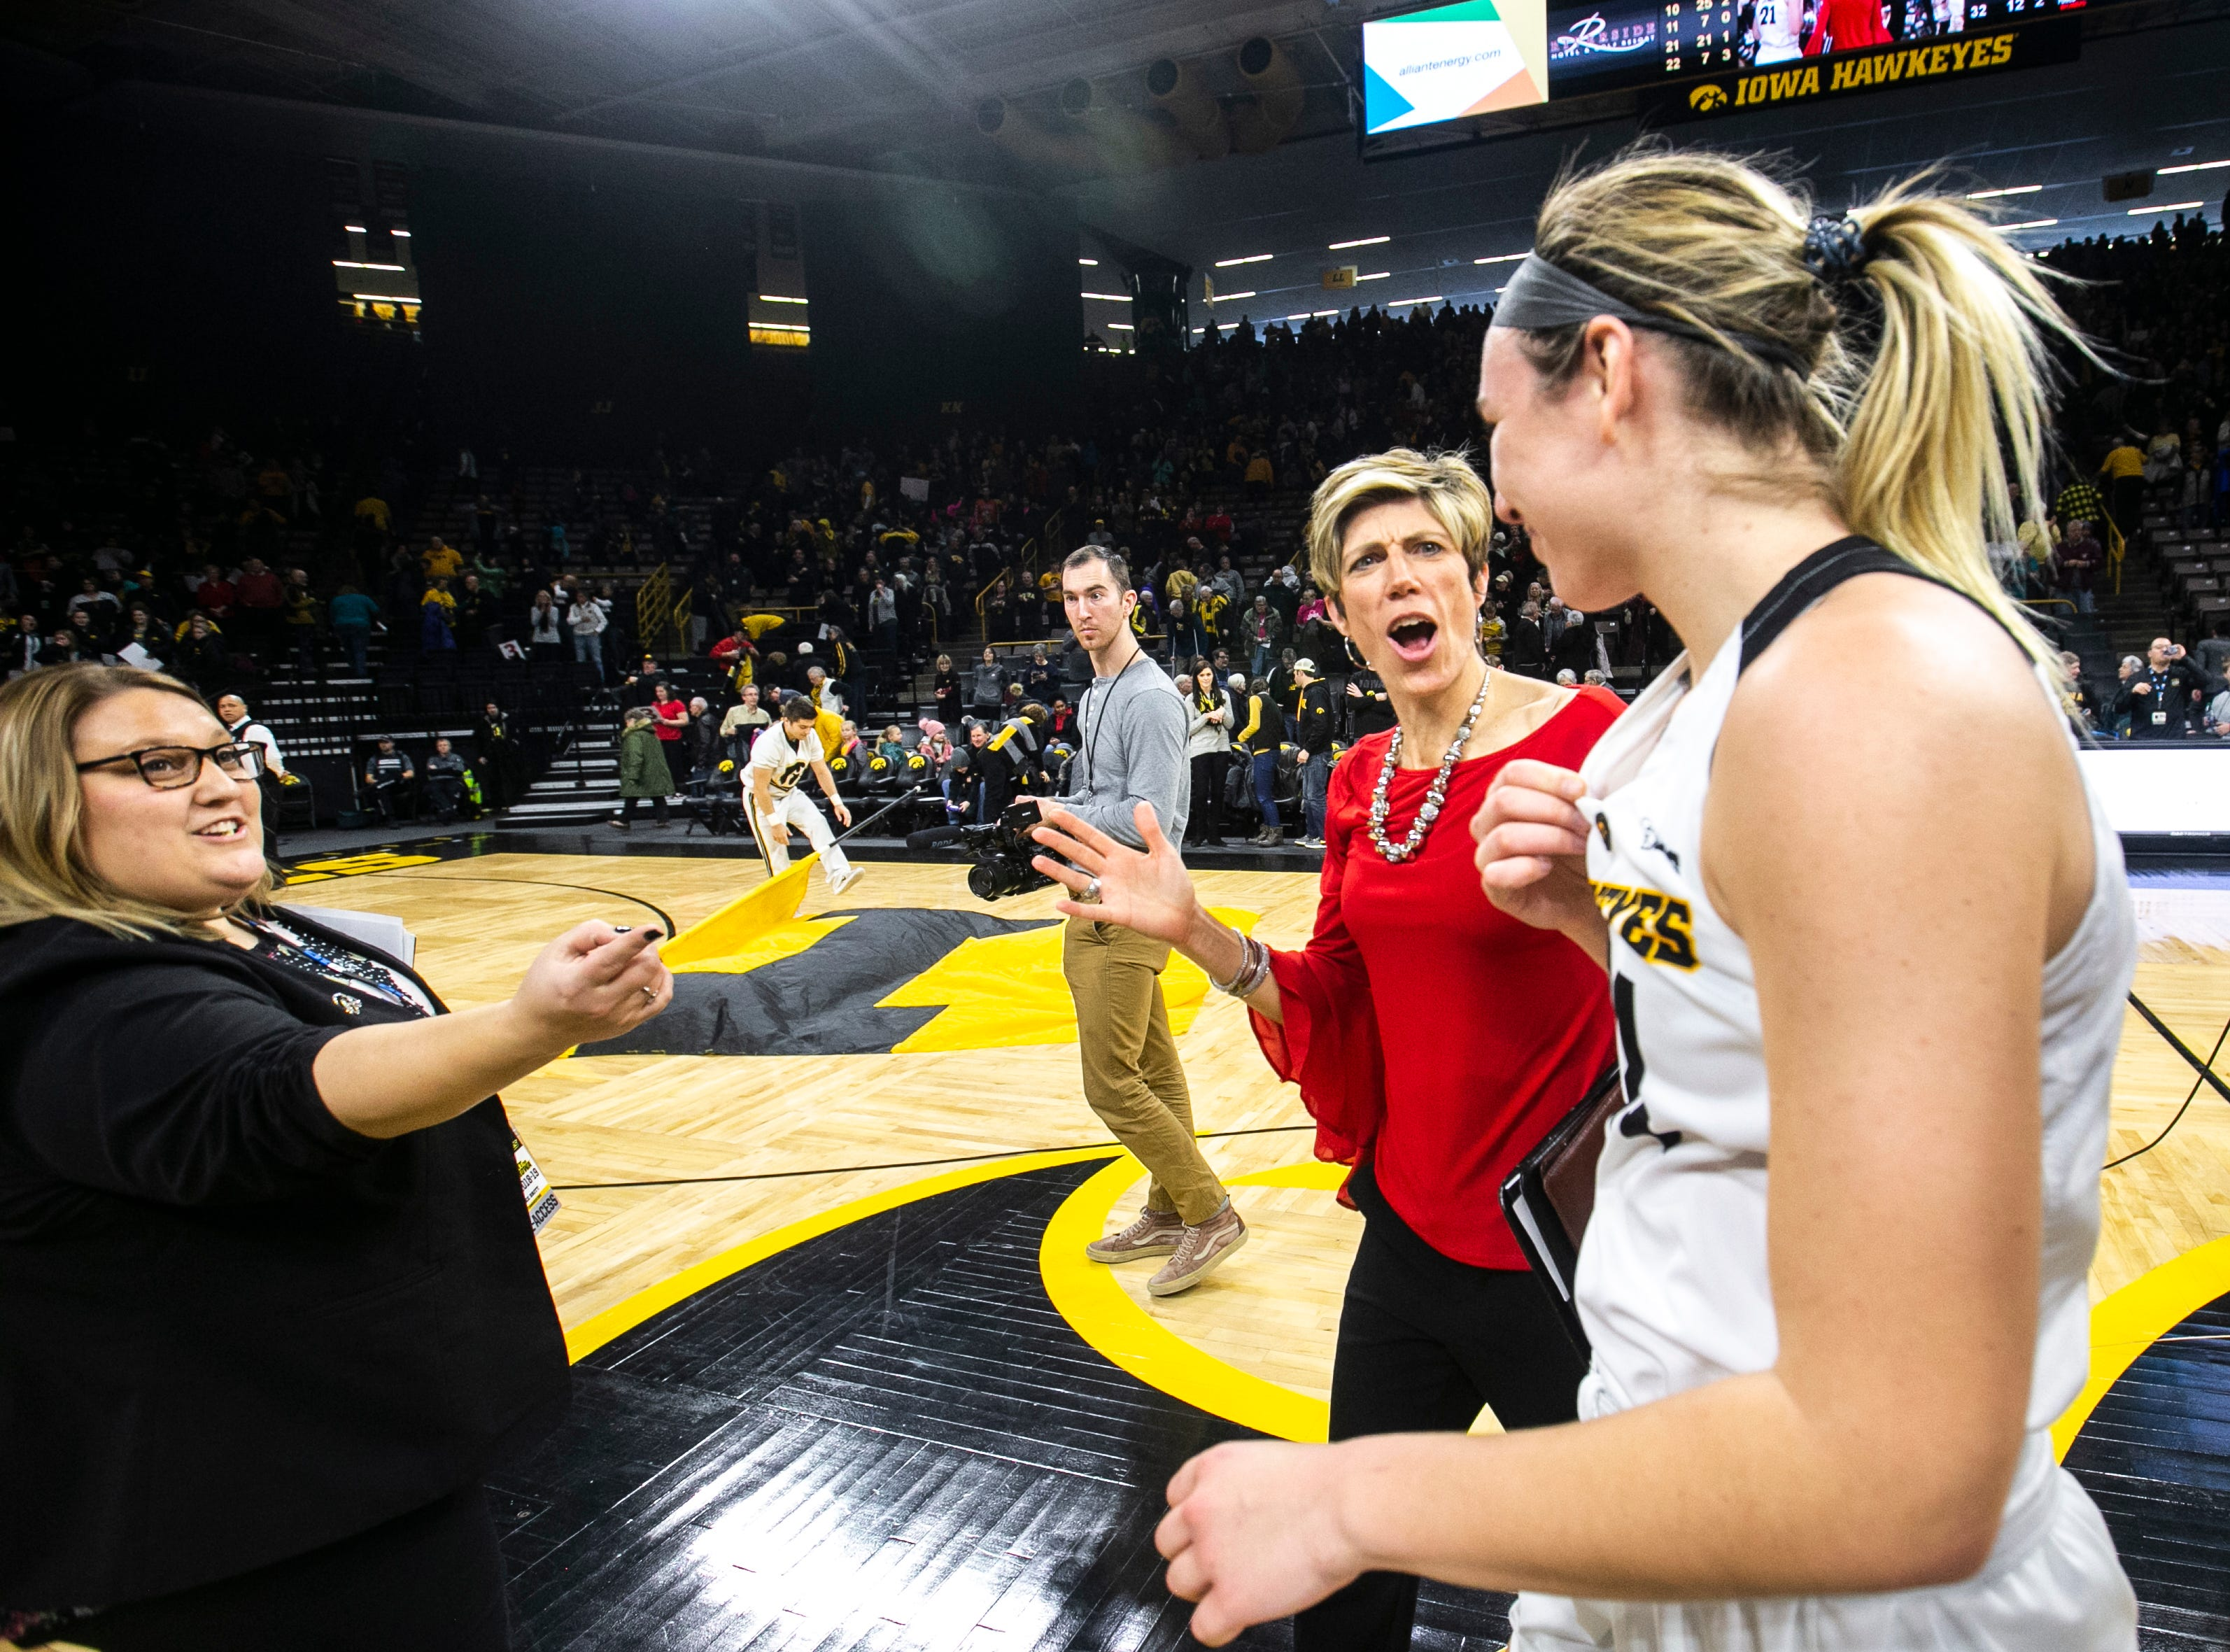 Iowa forward Hannah Stewart right talks with associate coach Jan Jensen after a NCAA Big Ten Conference women's basketball game on Sunday, Jan. 27, 2019, at Carver-Hawkeye Arena in Iowa City, Iowa.